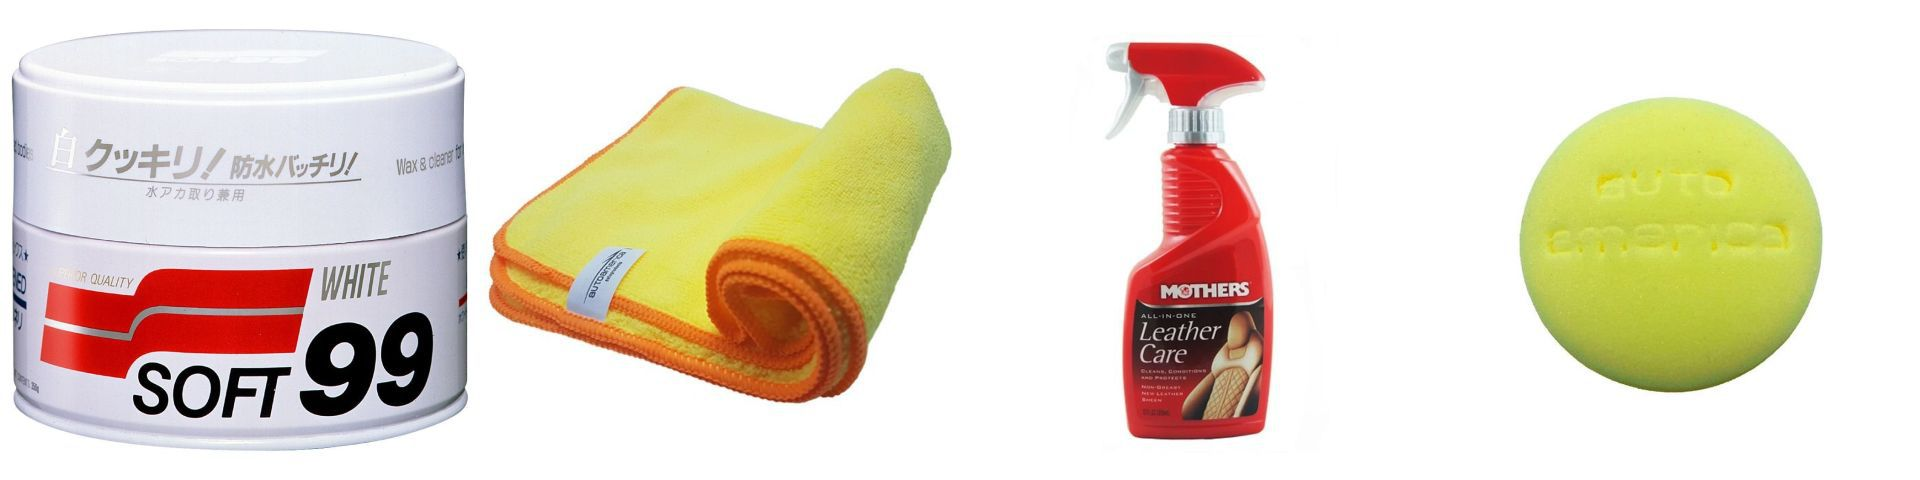 Kit Cera+Flanela+Leather care all-in+Espuma aplicadora